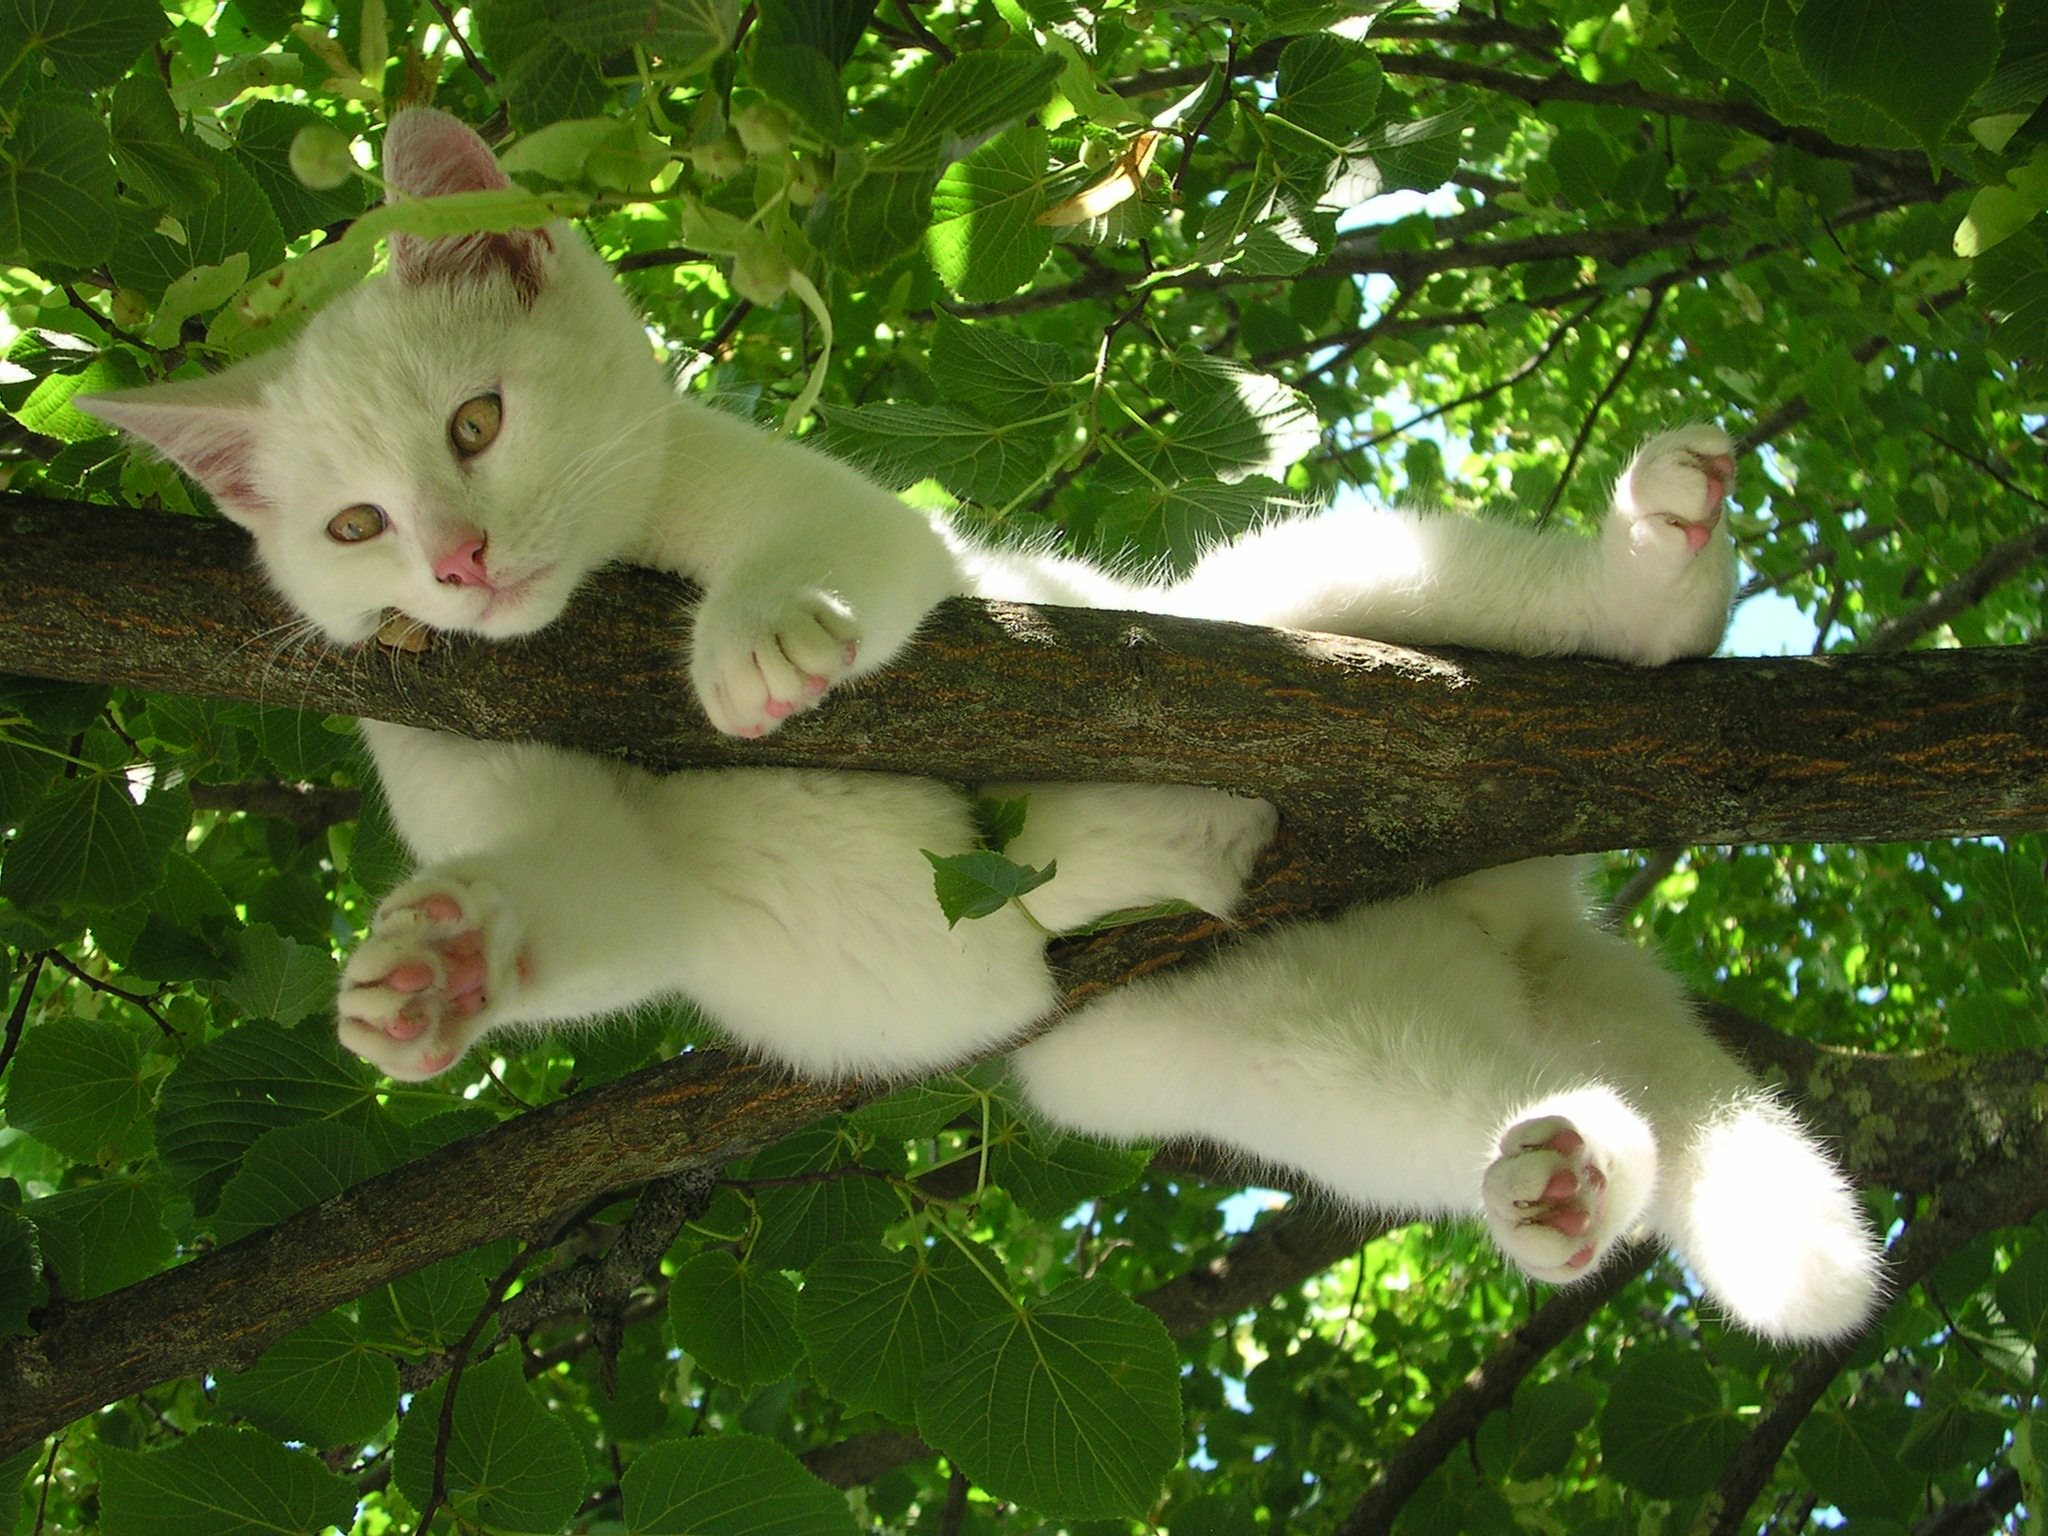 Iphone 5 Wallpaper Cute Pinterest White Cat Relaxing In A Tree Full Hd Wallpaper And